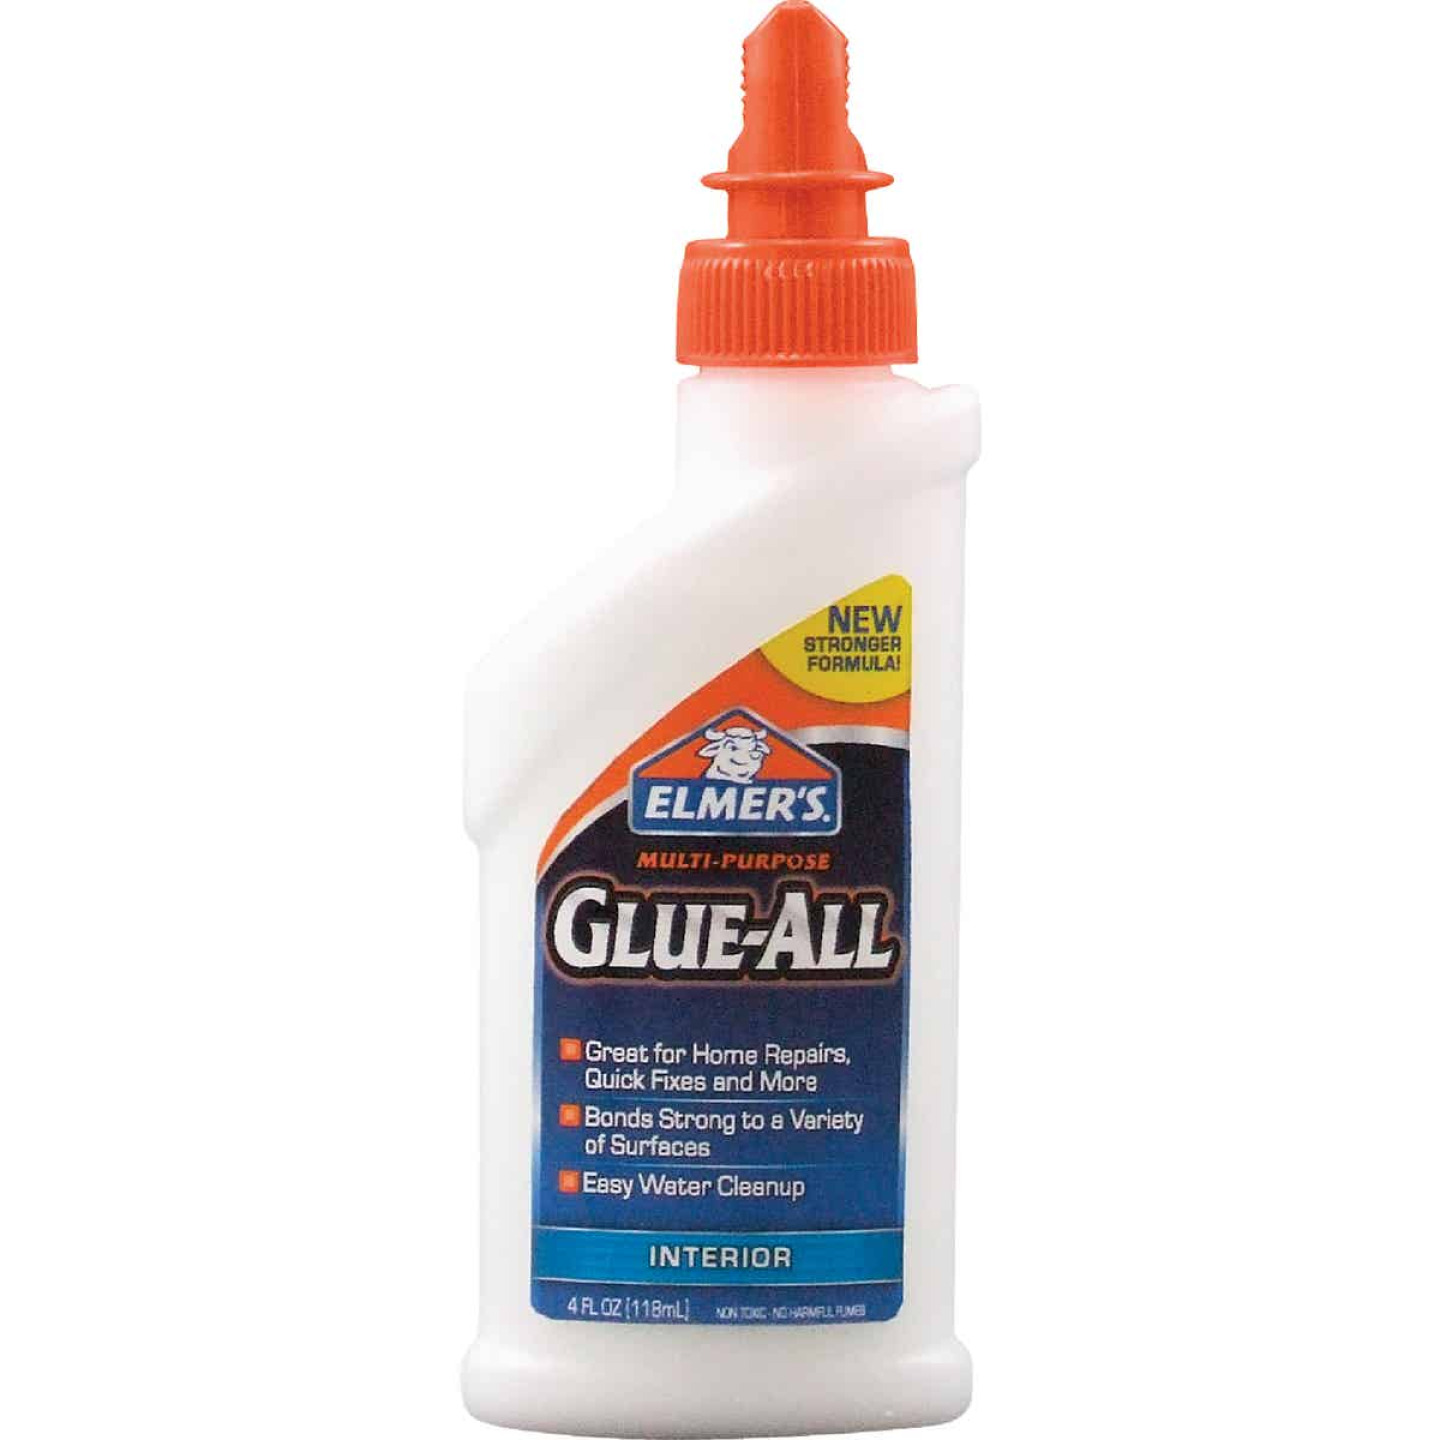 Elmer's Glue-All 4 Oz. All-Purpose Glue Image 1